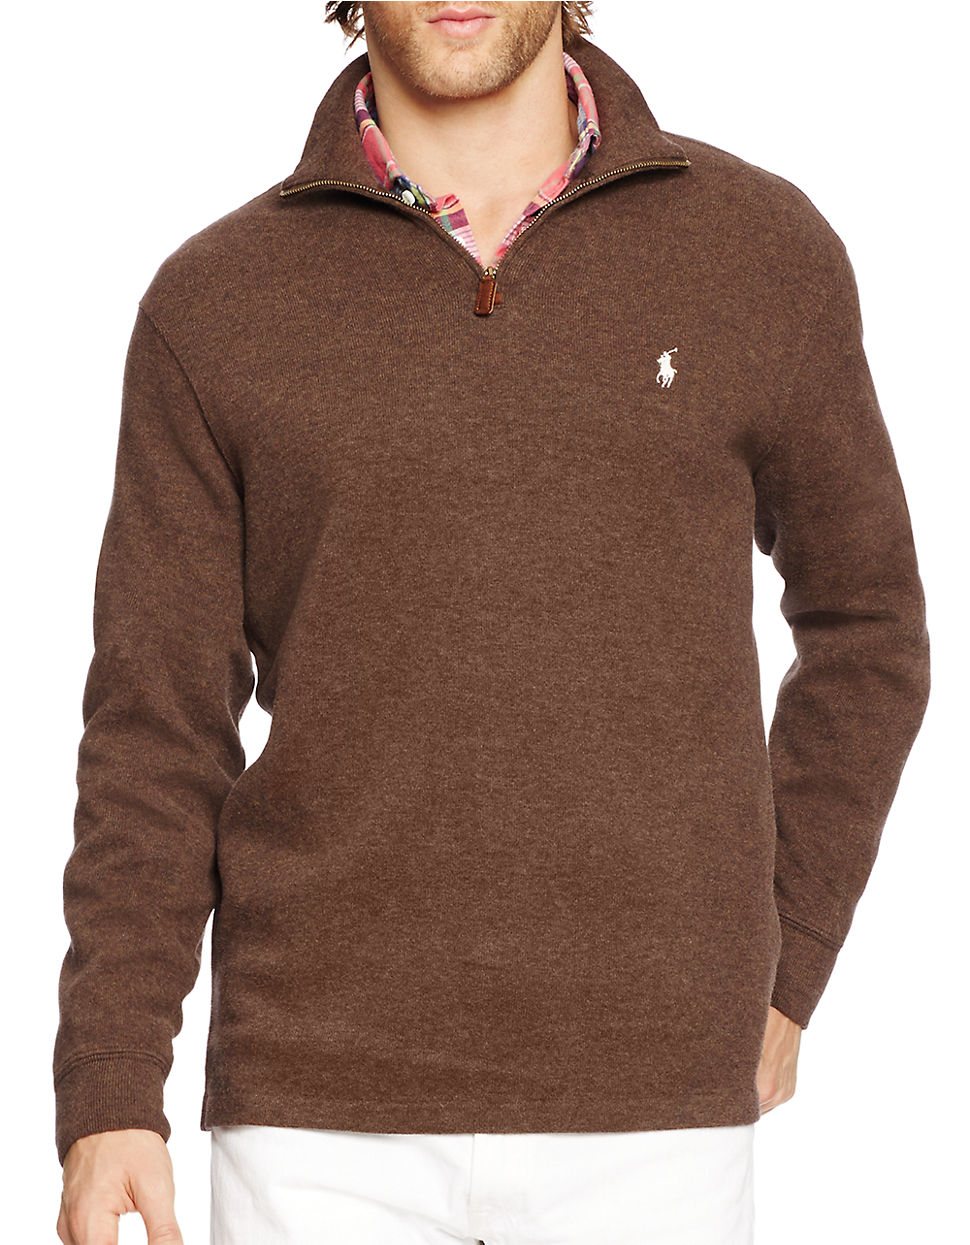 polo ralph lauren french rib half zip pullover in brown for men lyst. Black Bedroom Furniture Sets. Home Design Ideas